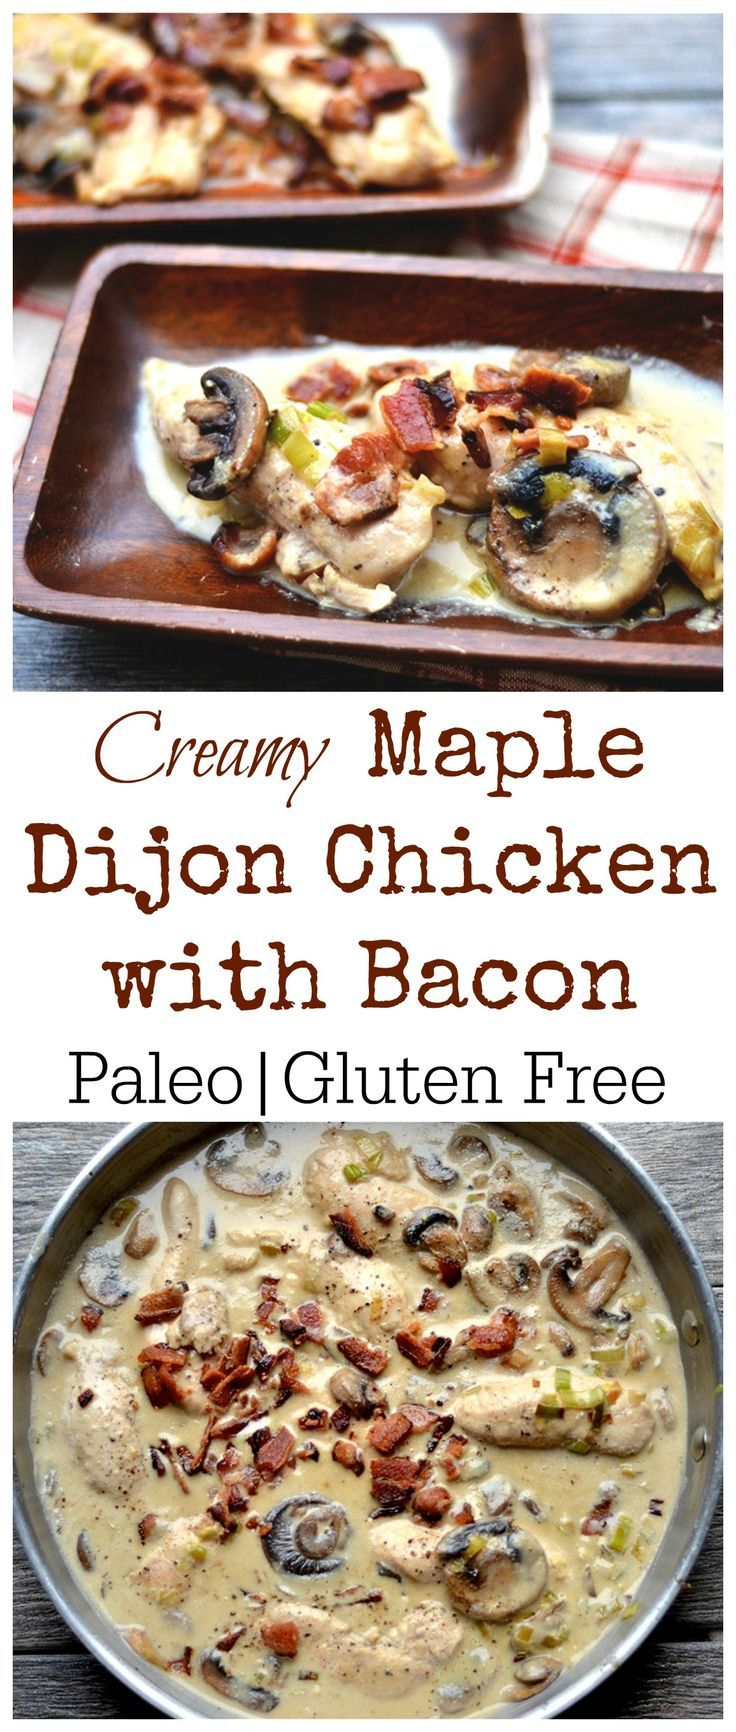 best 25 maple dijon chicken ideas on pinterest dijon chicken dijon mustard chicken and maple. Black Bedroom Furniture Sets. Home Design Ideas